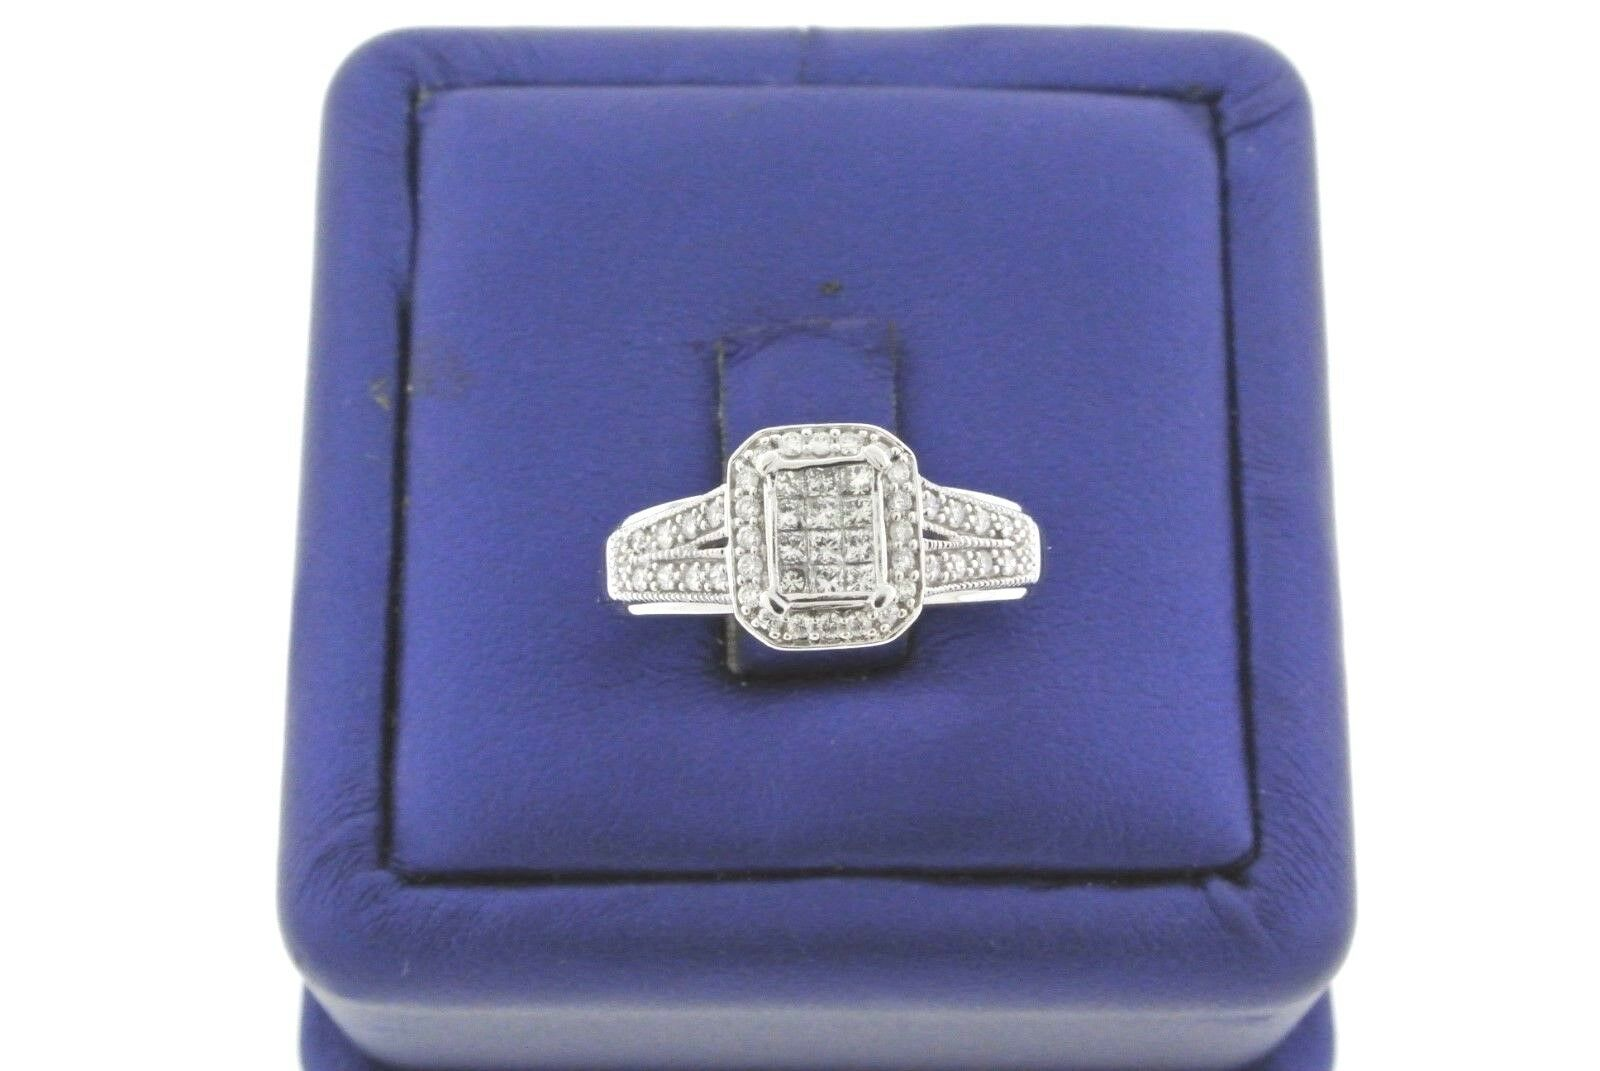 Special Price 10k White gold 1.00 CT Diamond Invisible Setting Engagement Ring,